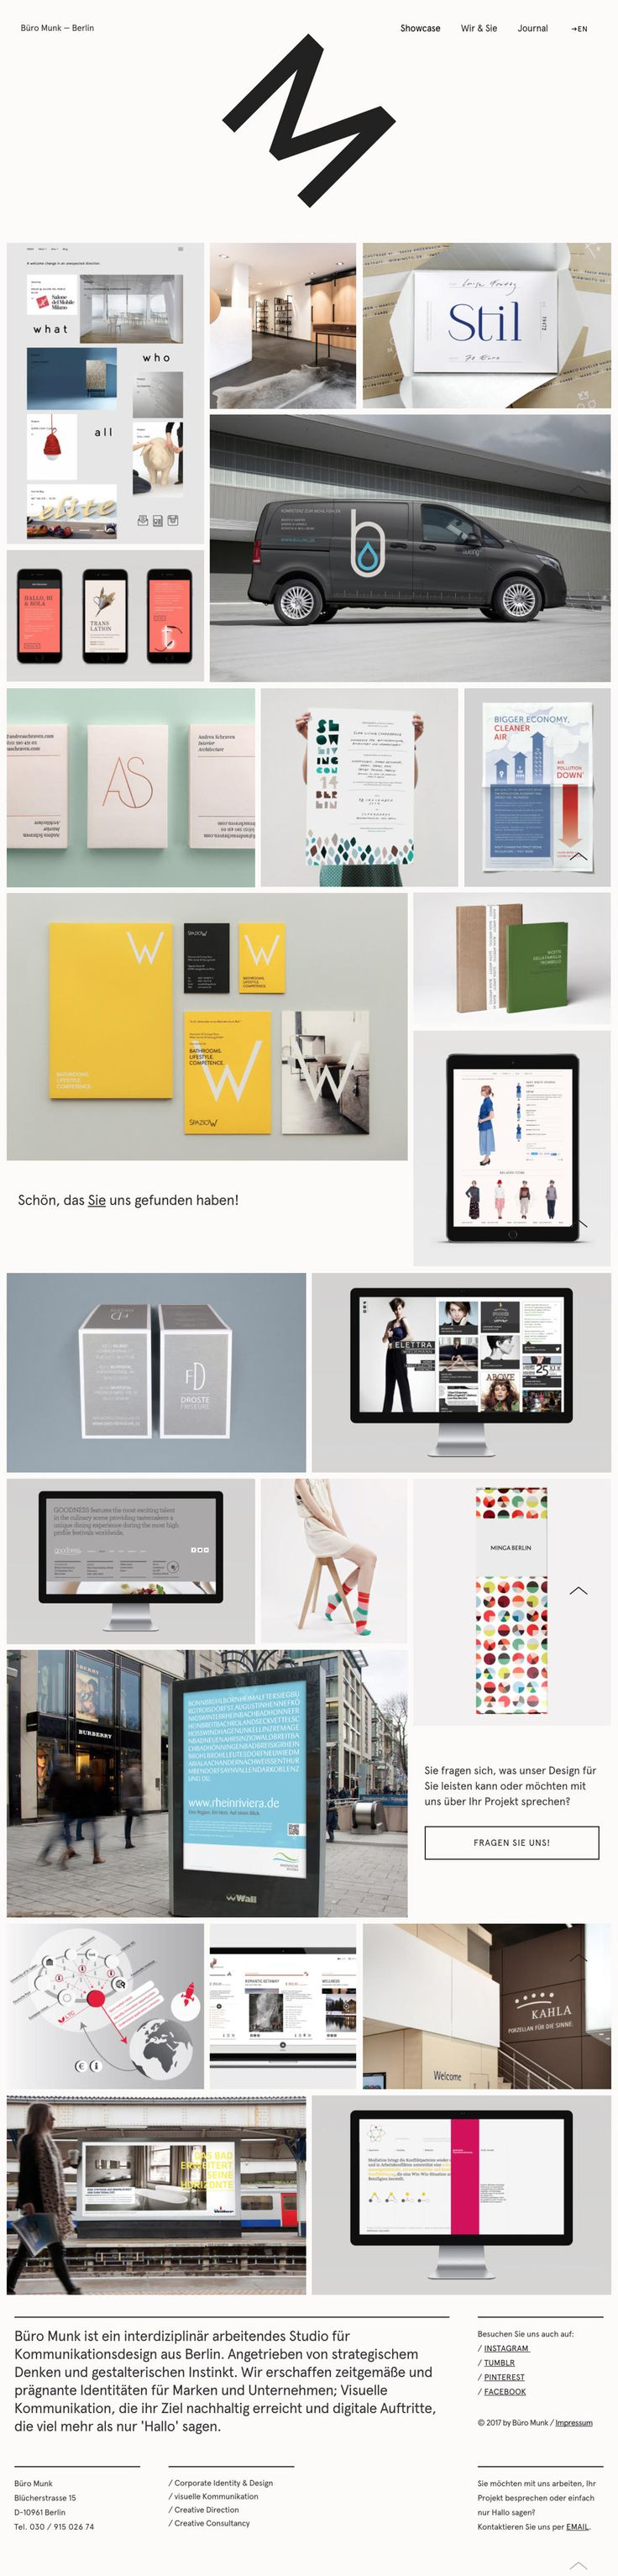 Site of the day: Büro Munk See more: http://mindsparklemag.com/website/buro-munk/  Büro Munk is a beautifully designed site that is featured as Site of the Day on design blog Mindsparkle Mag